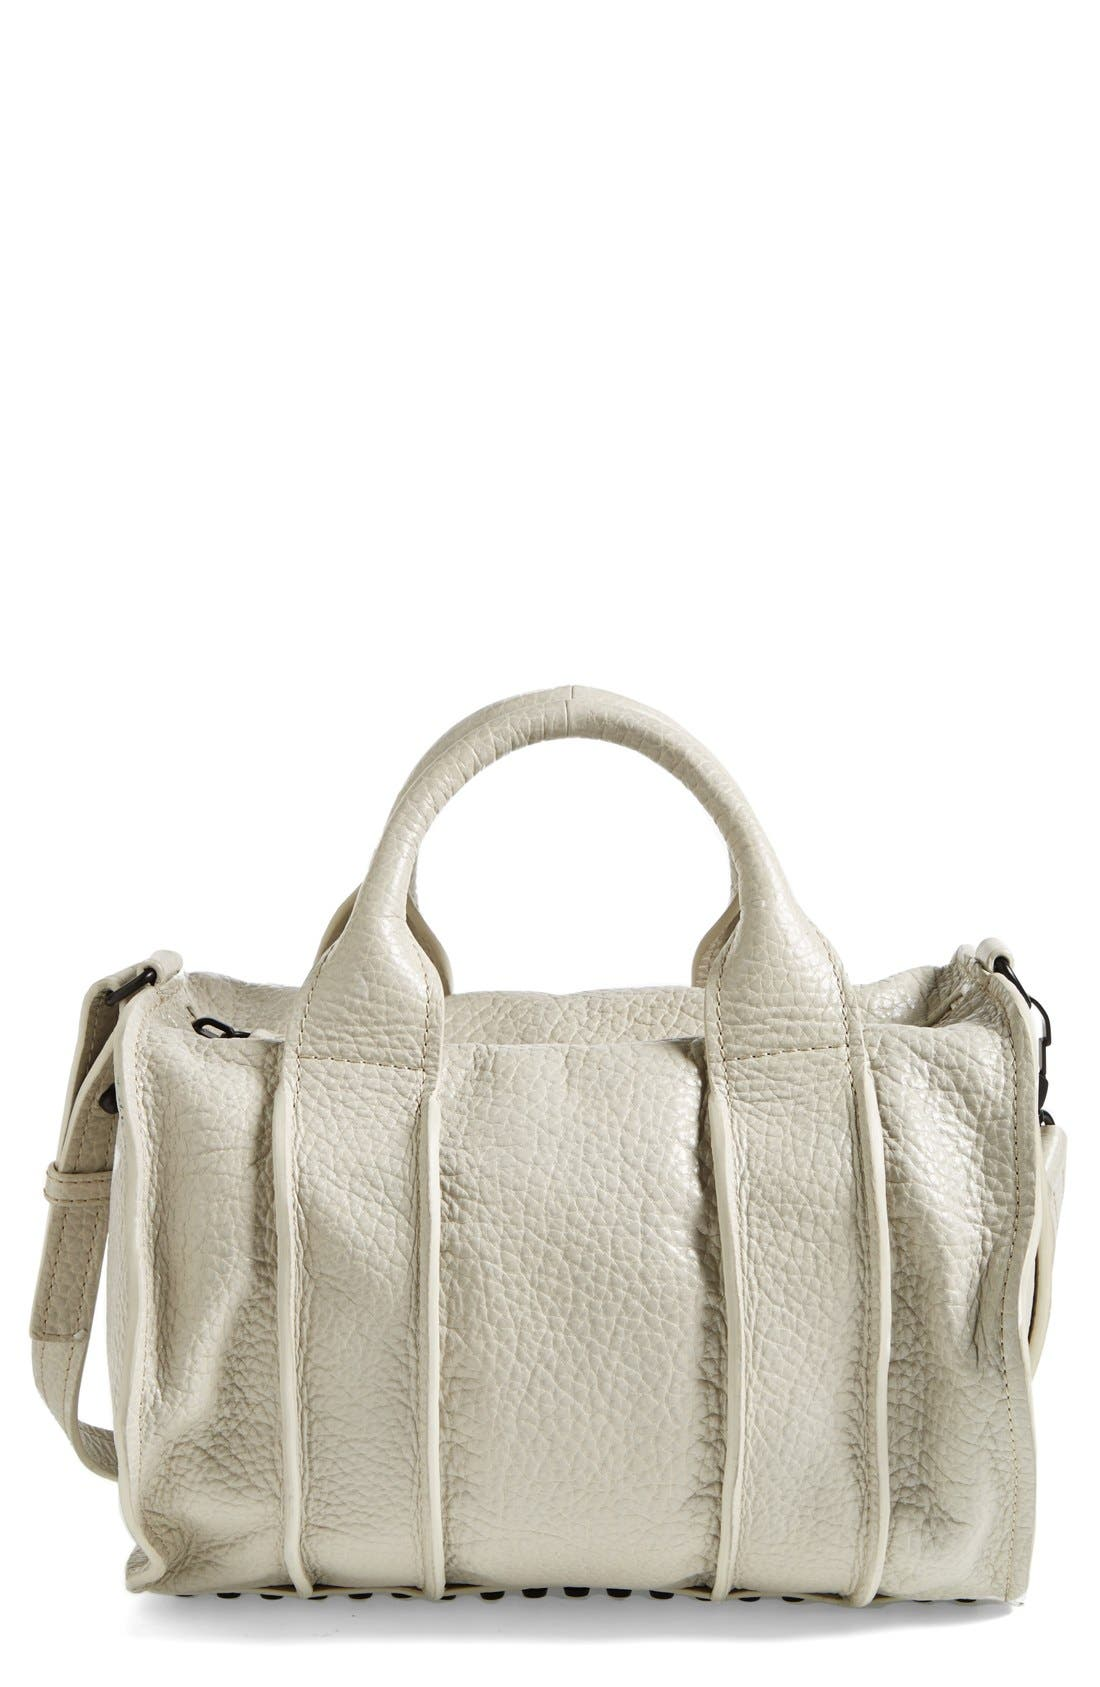 Main Image - Alexander Wang 'Rocco - Inside Out' Leather Satchel